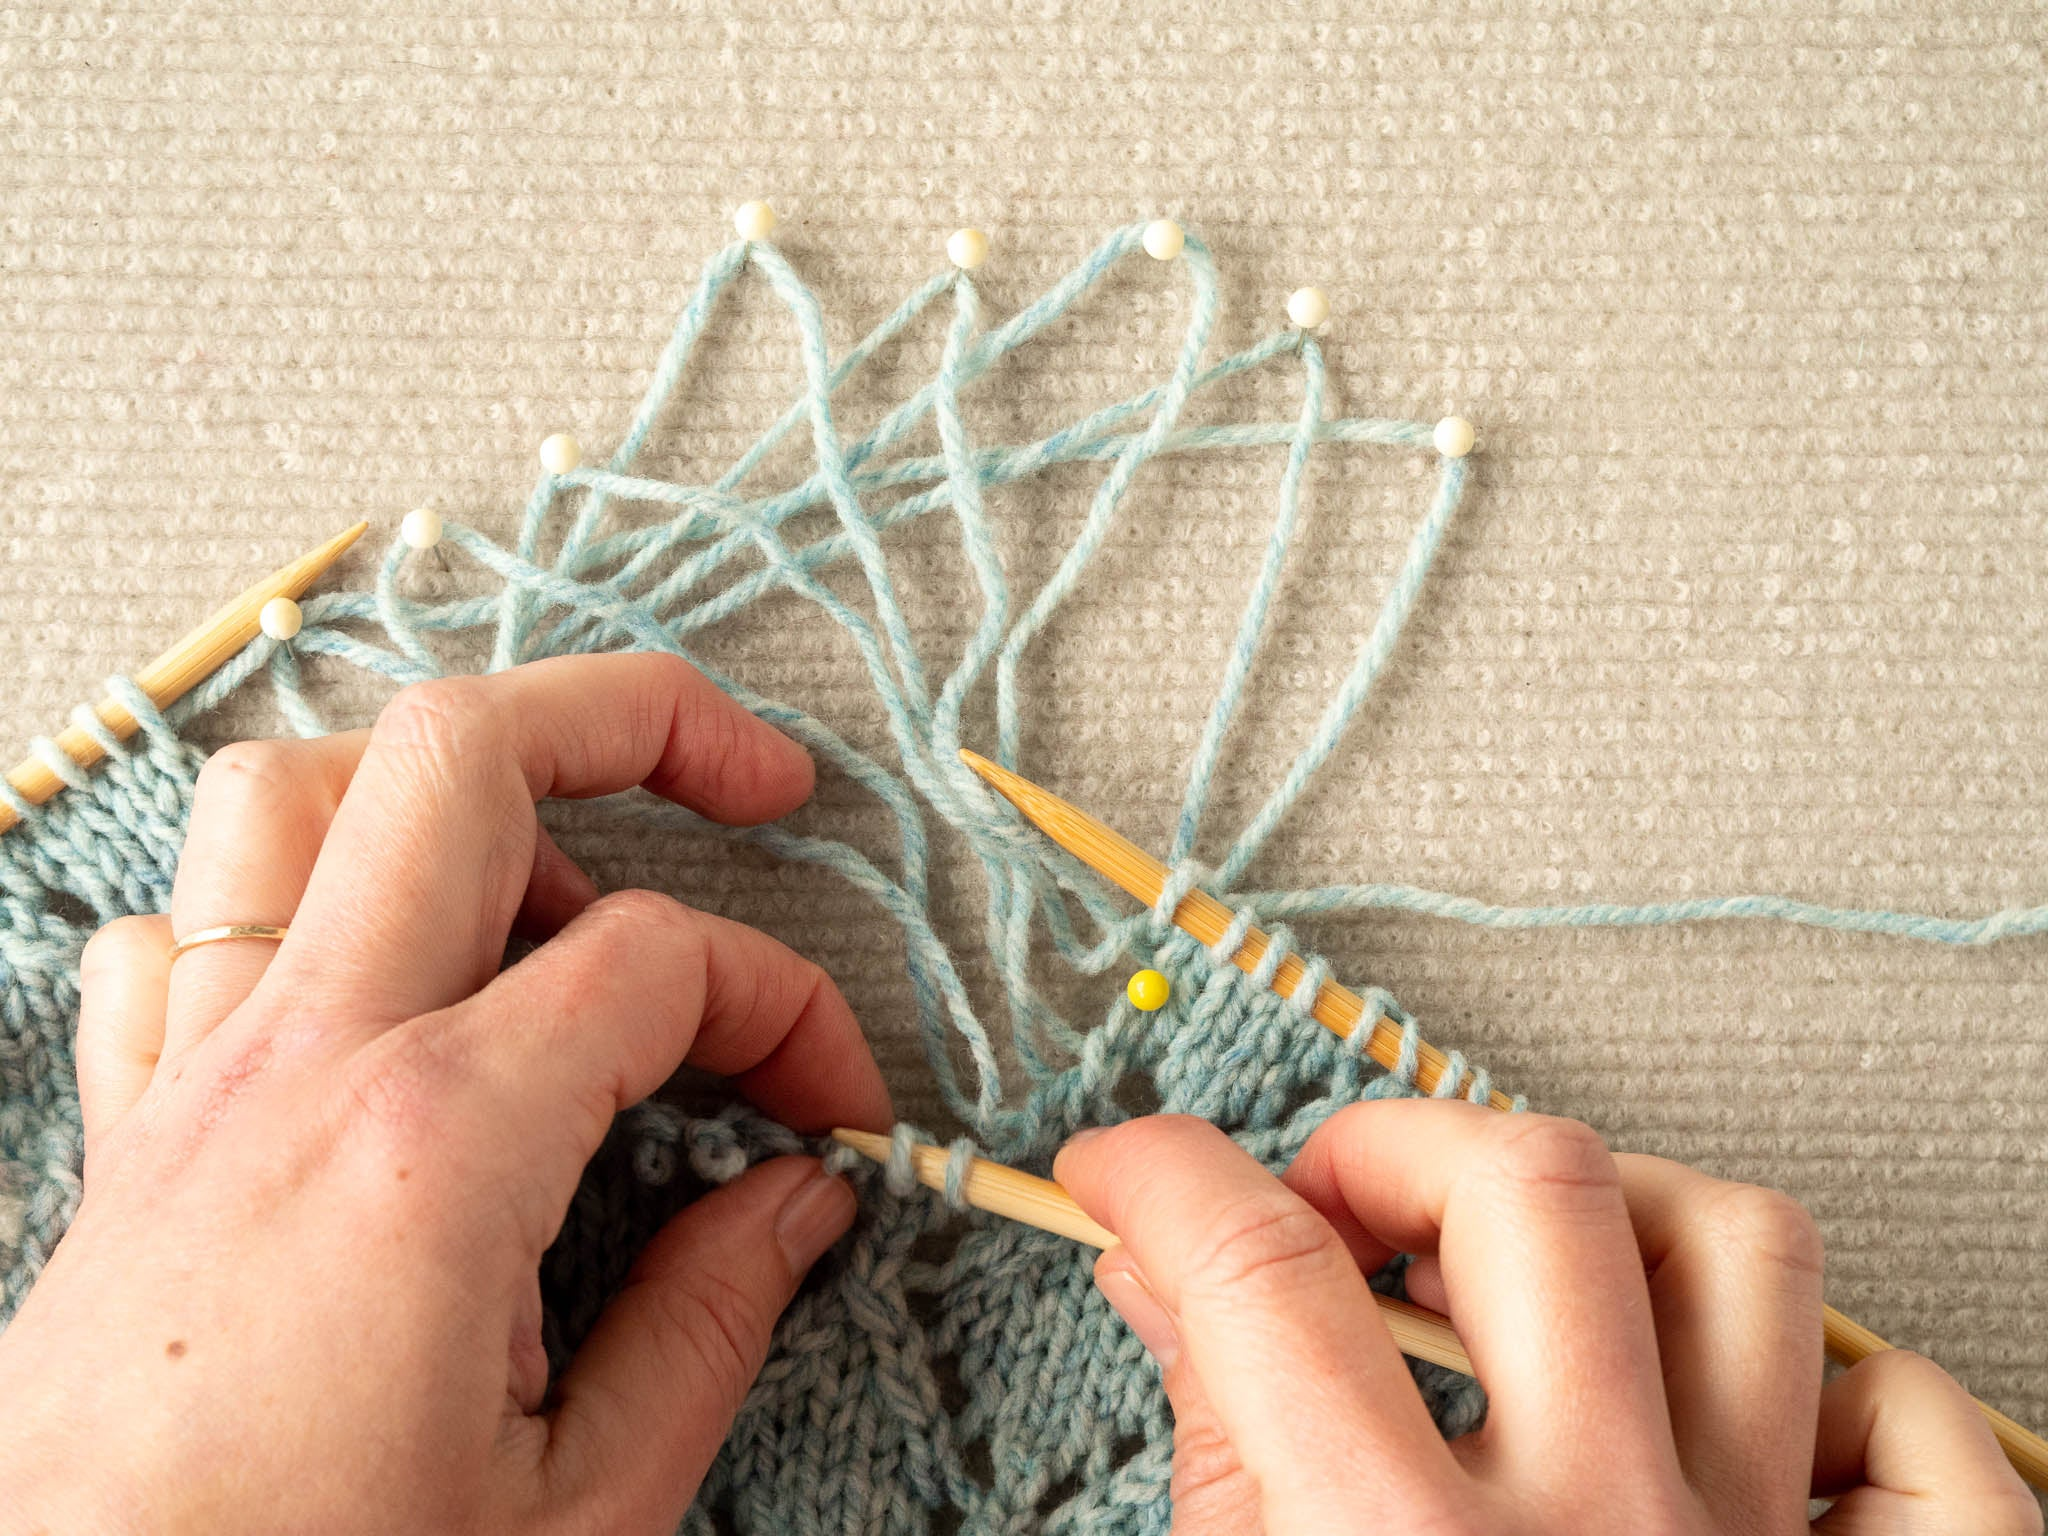 photo showing several unravelled strands of a swatch pinned out on a blocking mat